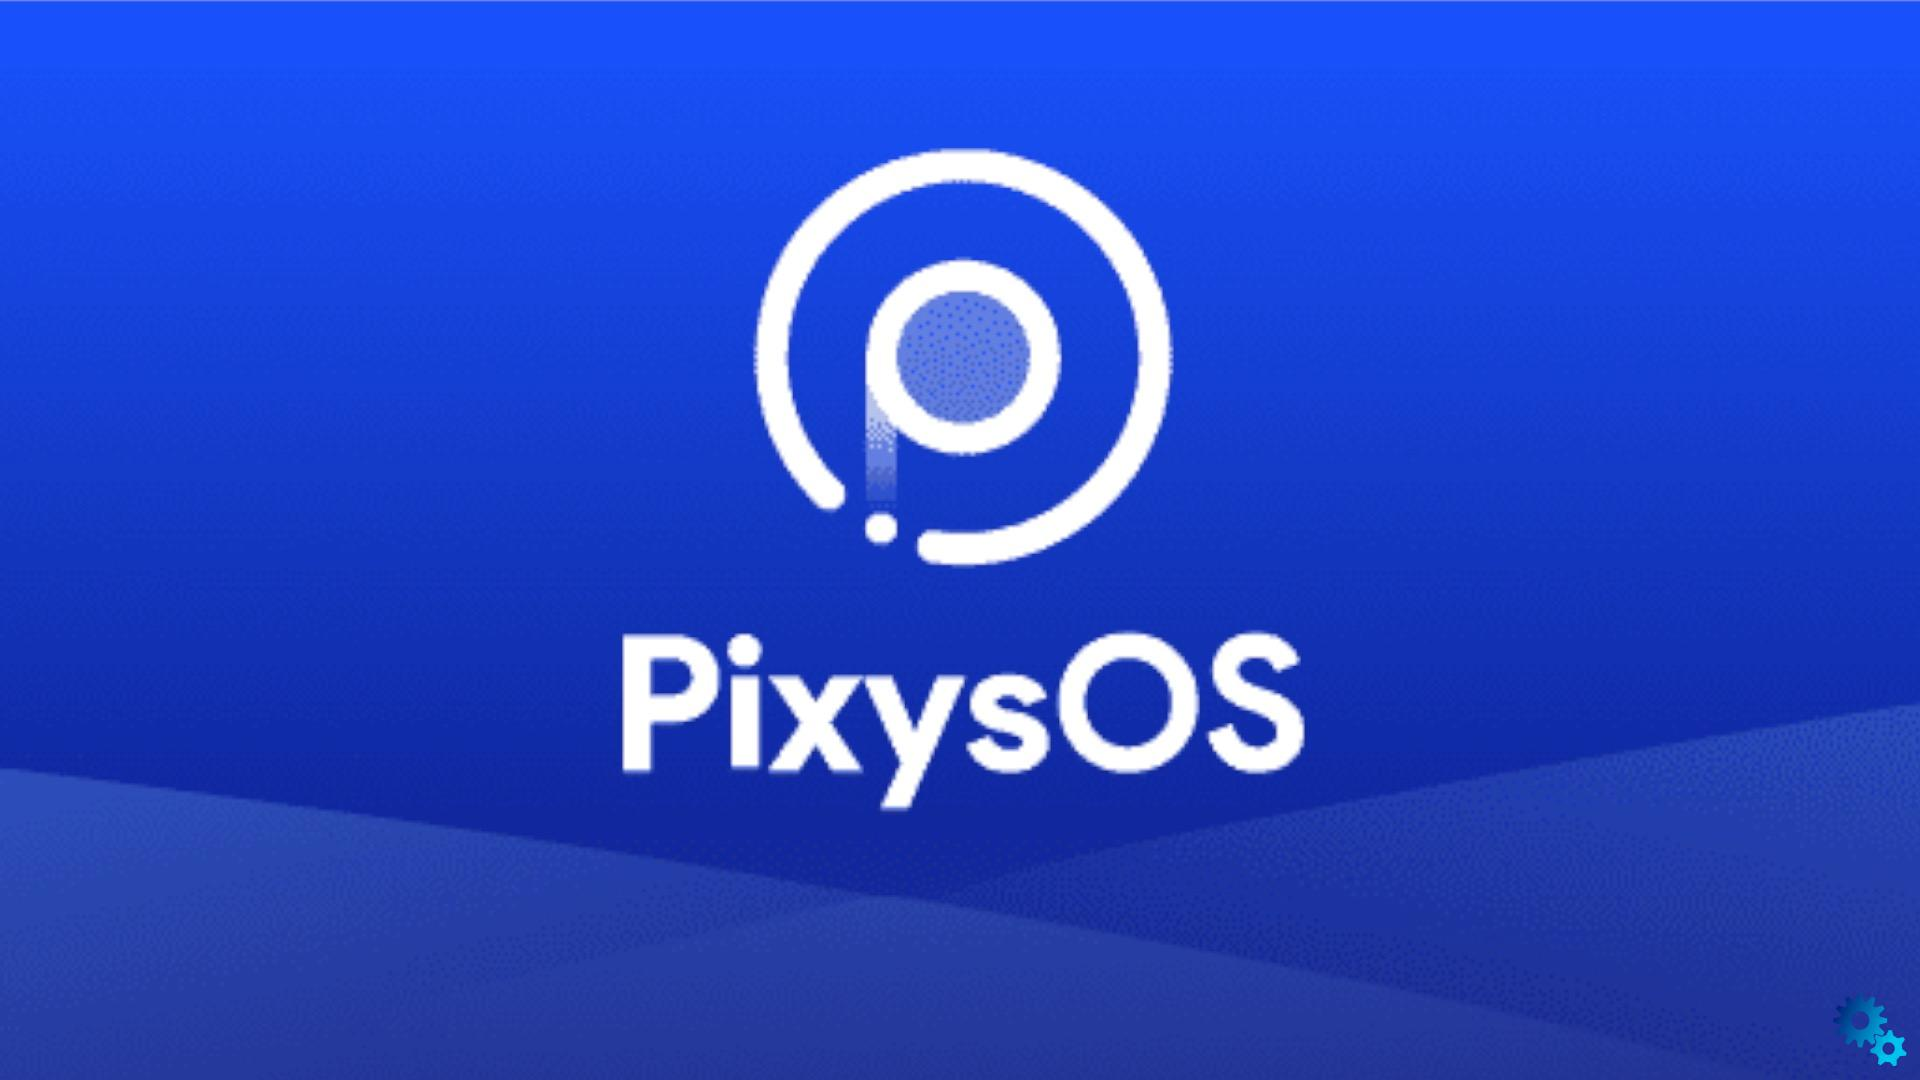 Redmi Note 8 Note 8T no Android 10 Pixys - Redmi Note 8 / Note 8T: no Android 10? Pixys OS can be ...